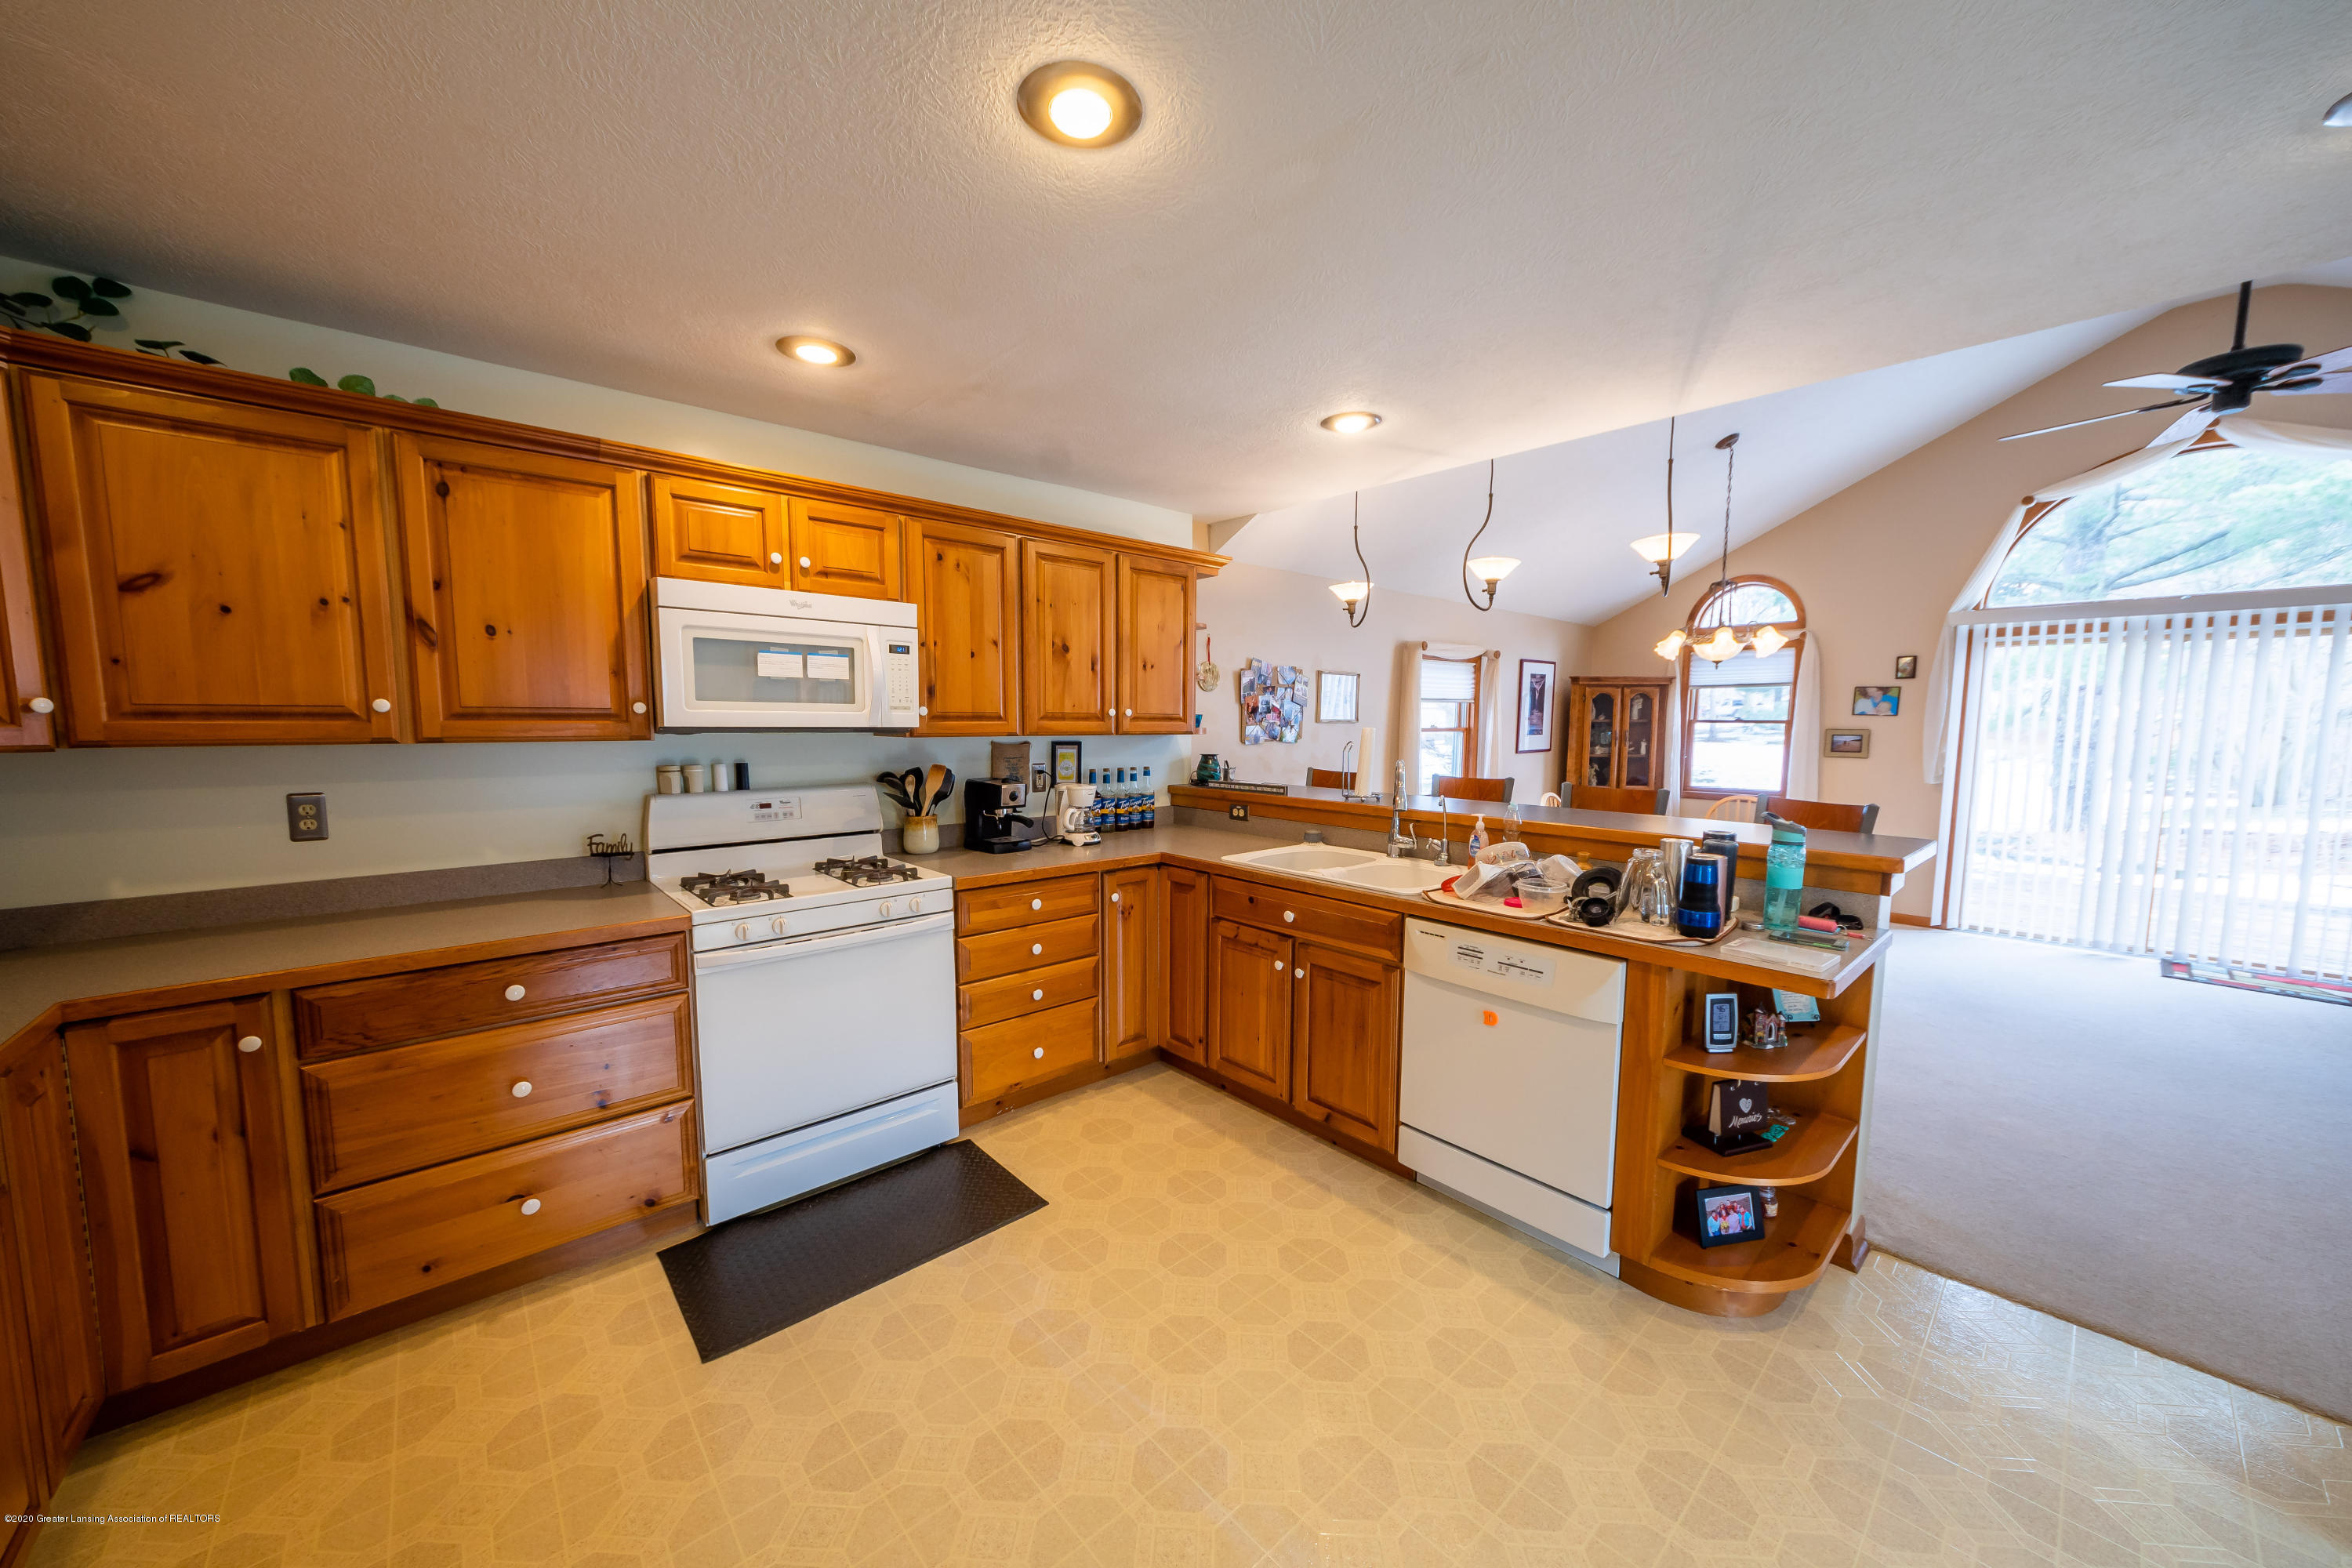 8008 N Welling Rd - Kitchen - 6